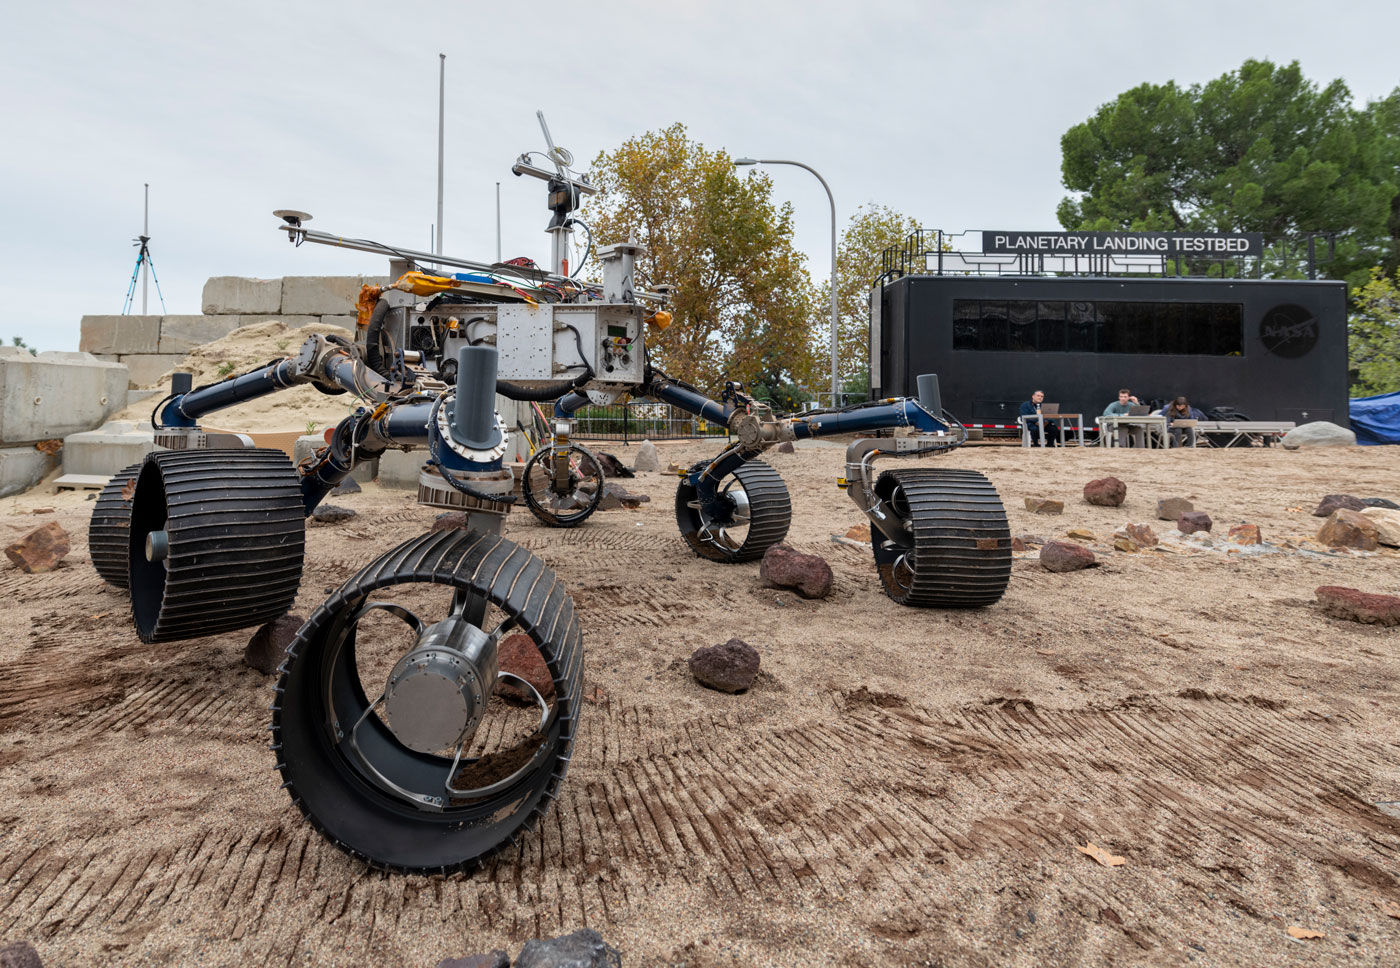 An engineering model of NASA's Mars 2020 rover makes tracks during a driving test in the Mars Yard, an area that simulates Mars-like conditions at NASA's Jet Propulsion Laboratory in Pasadena, California.